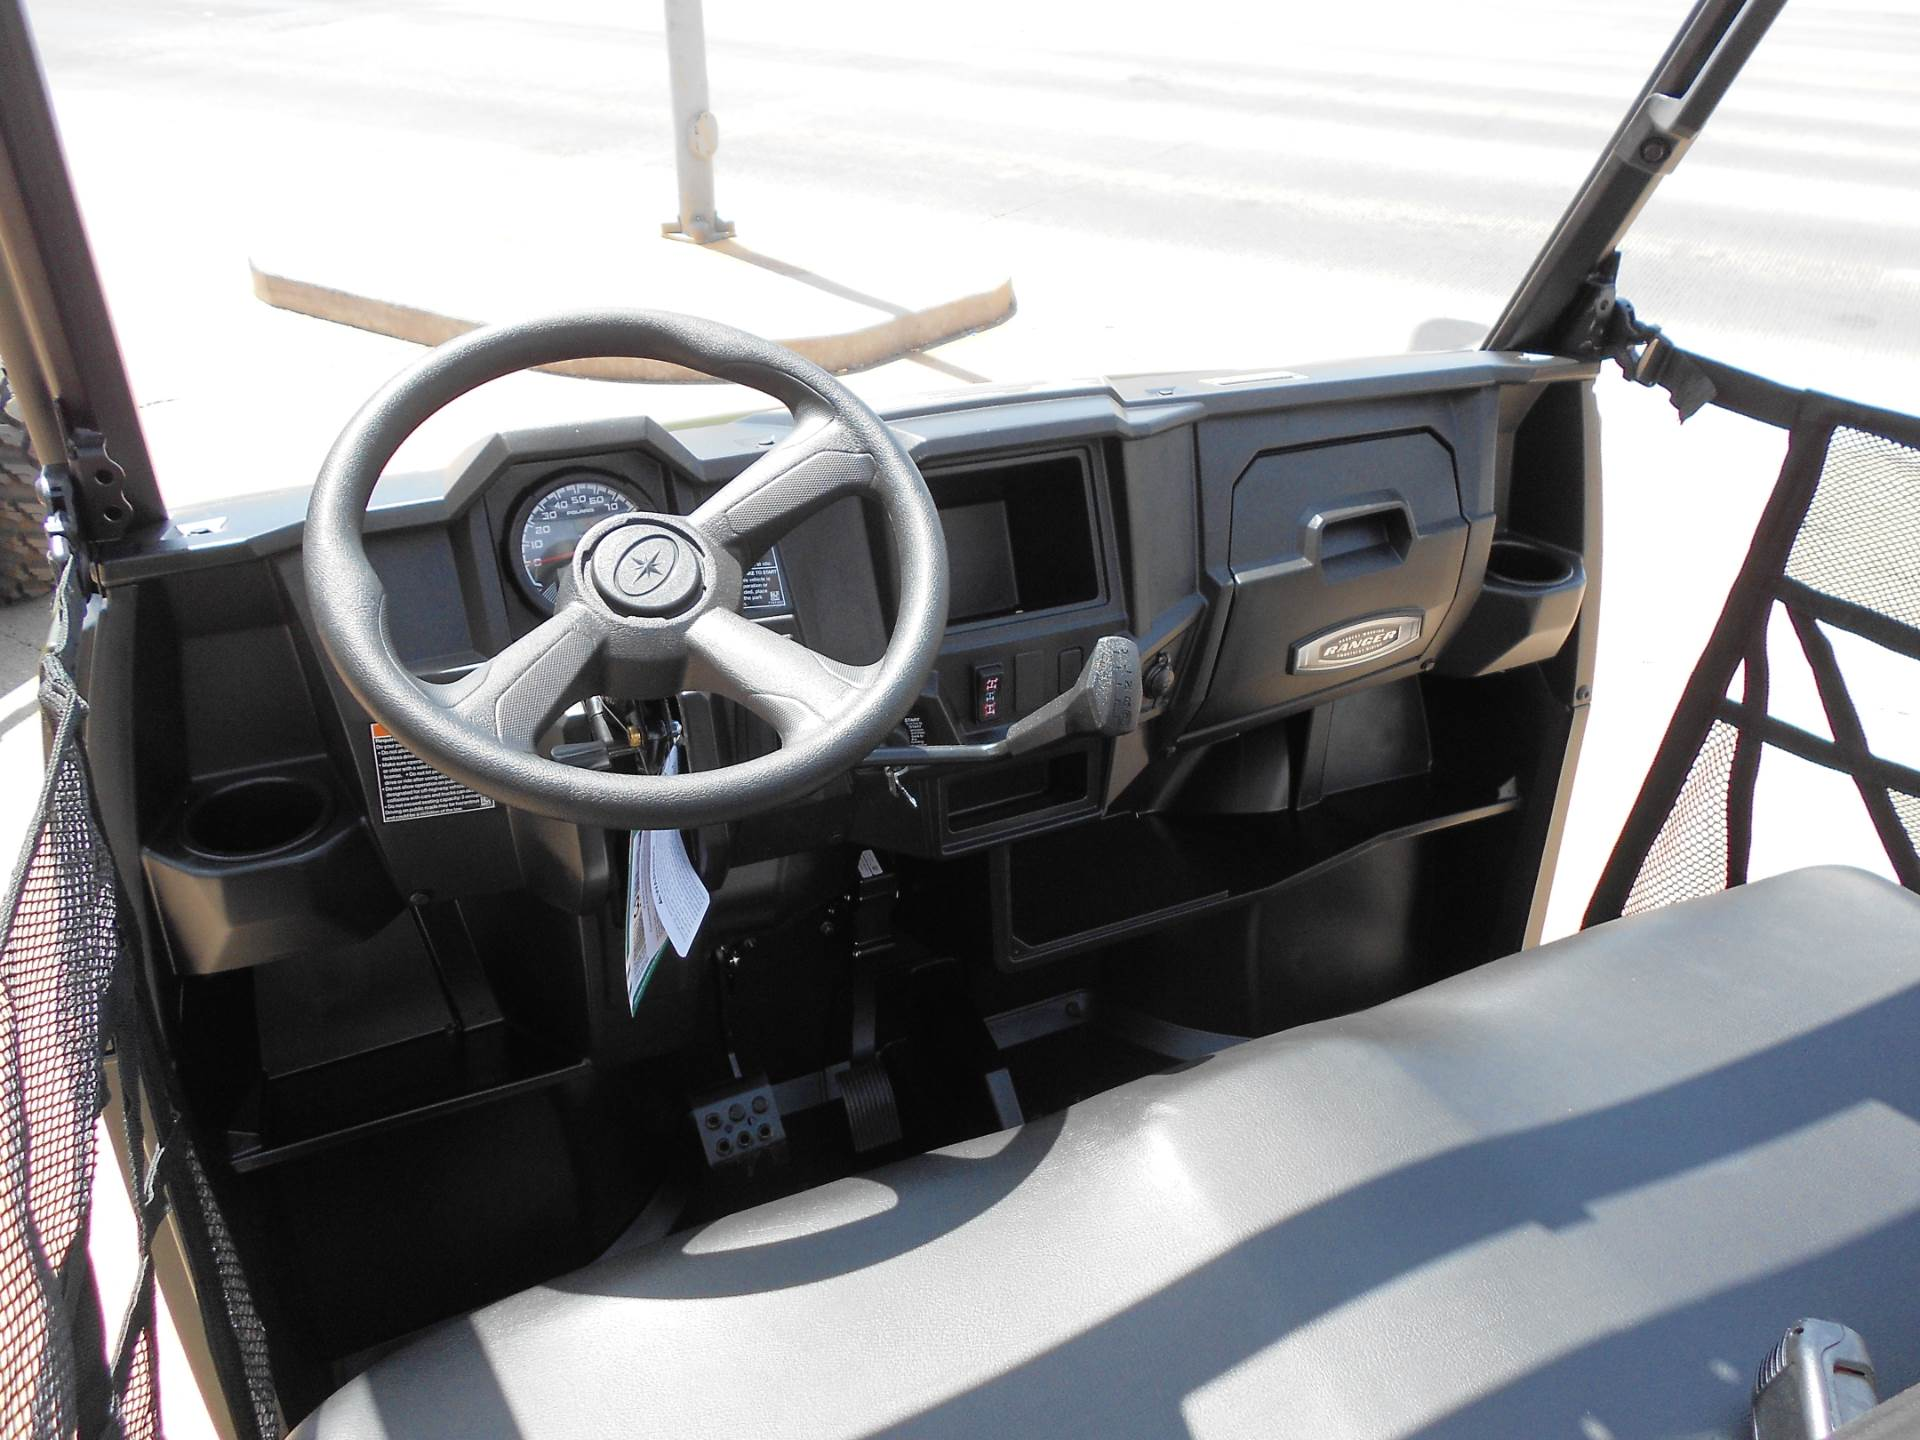 2020 Polaris Ranger 500 in Abilene, Texas - Photo 4